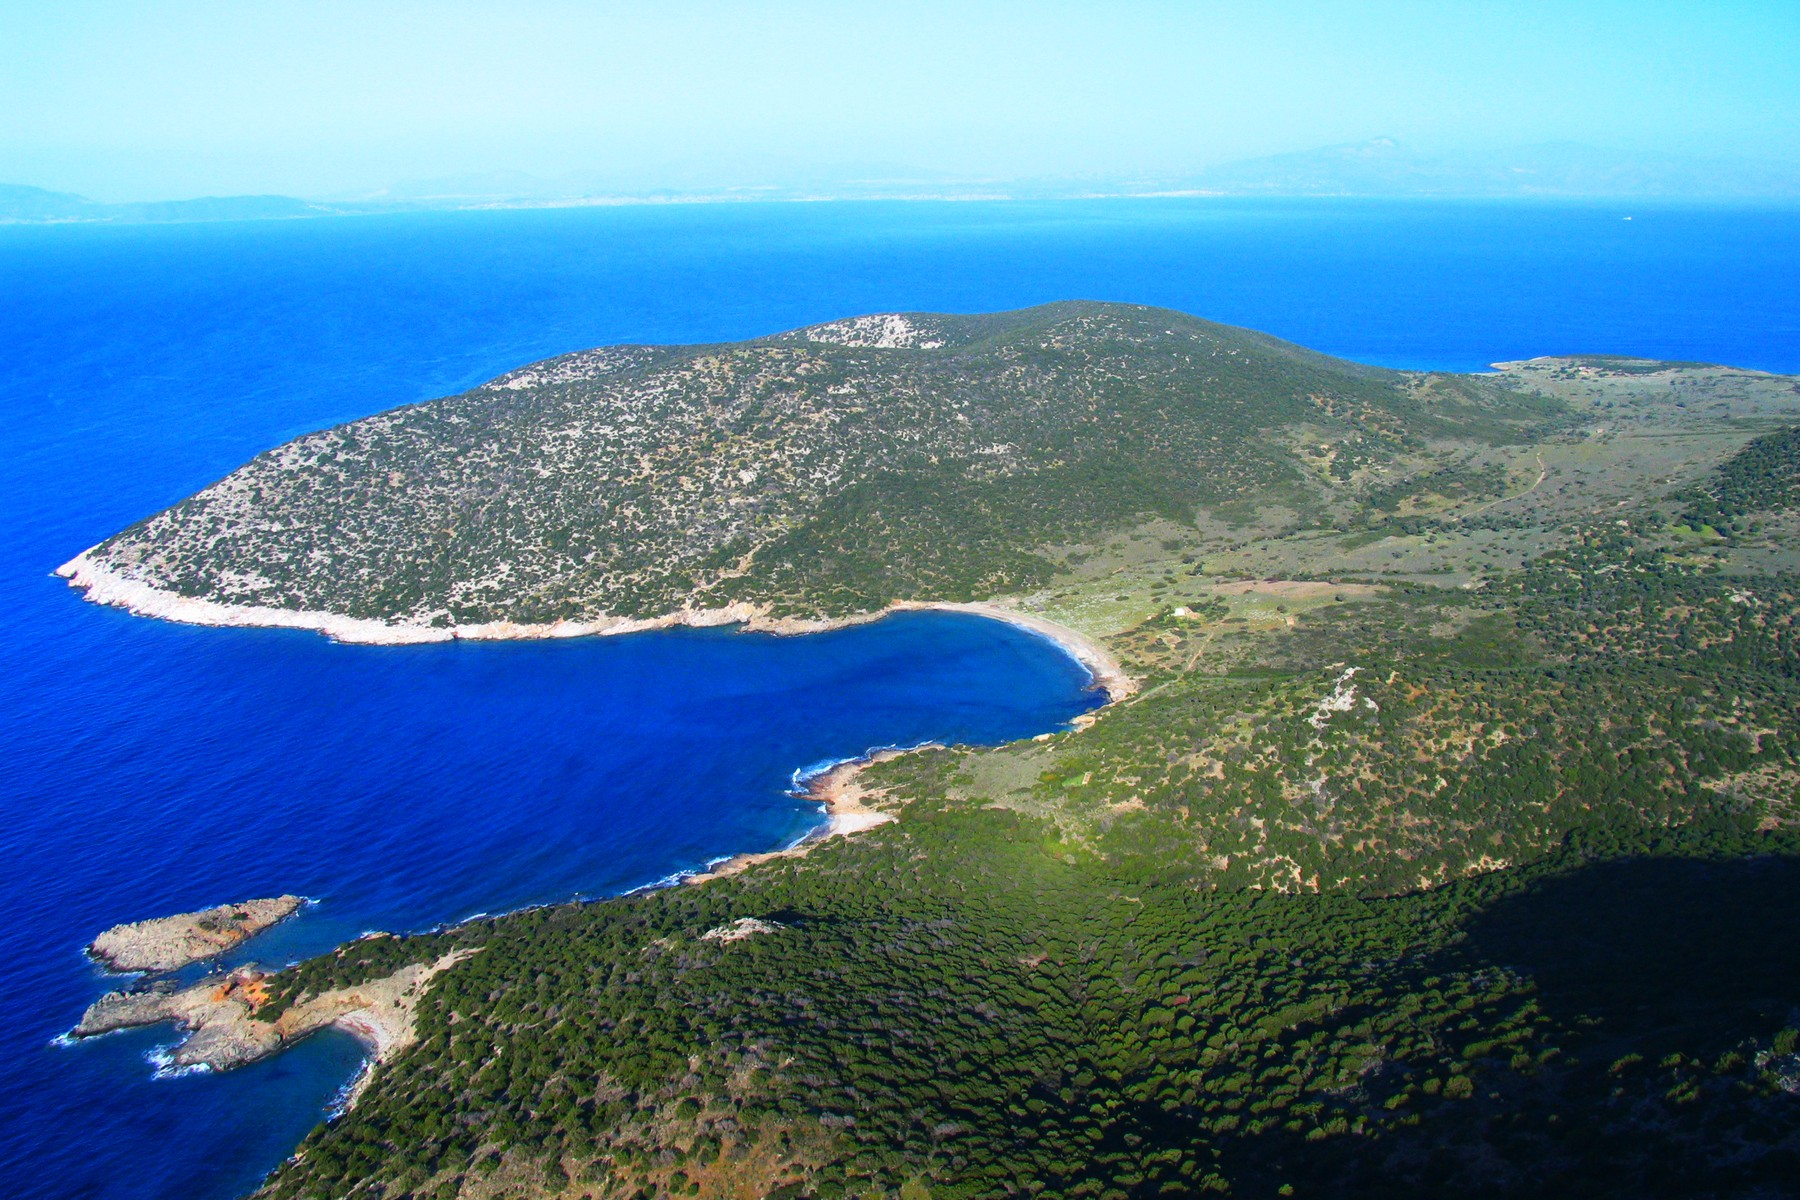 Isla privada por un Venta en Exclusive Retreat Other Northern Aegean, De Egeo Norte, Grecia